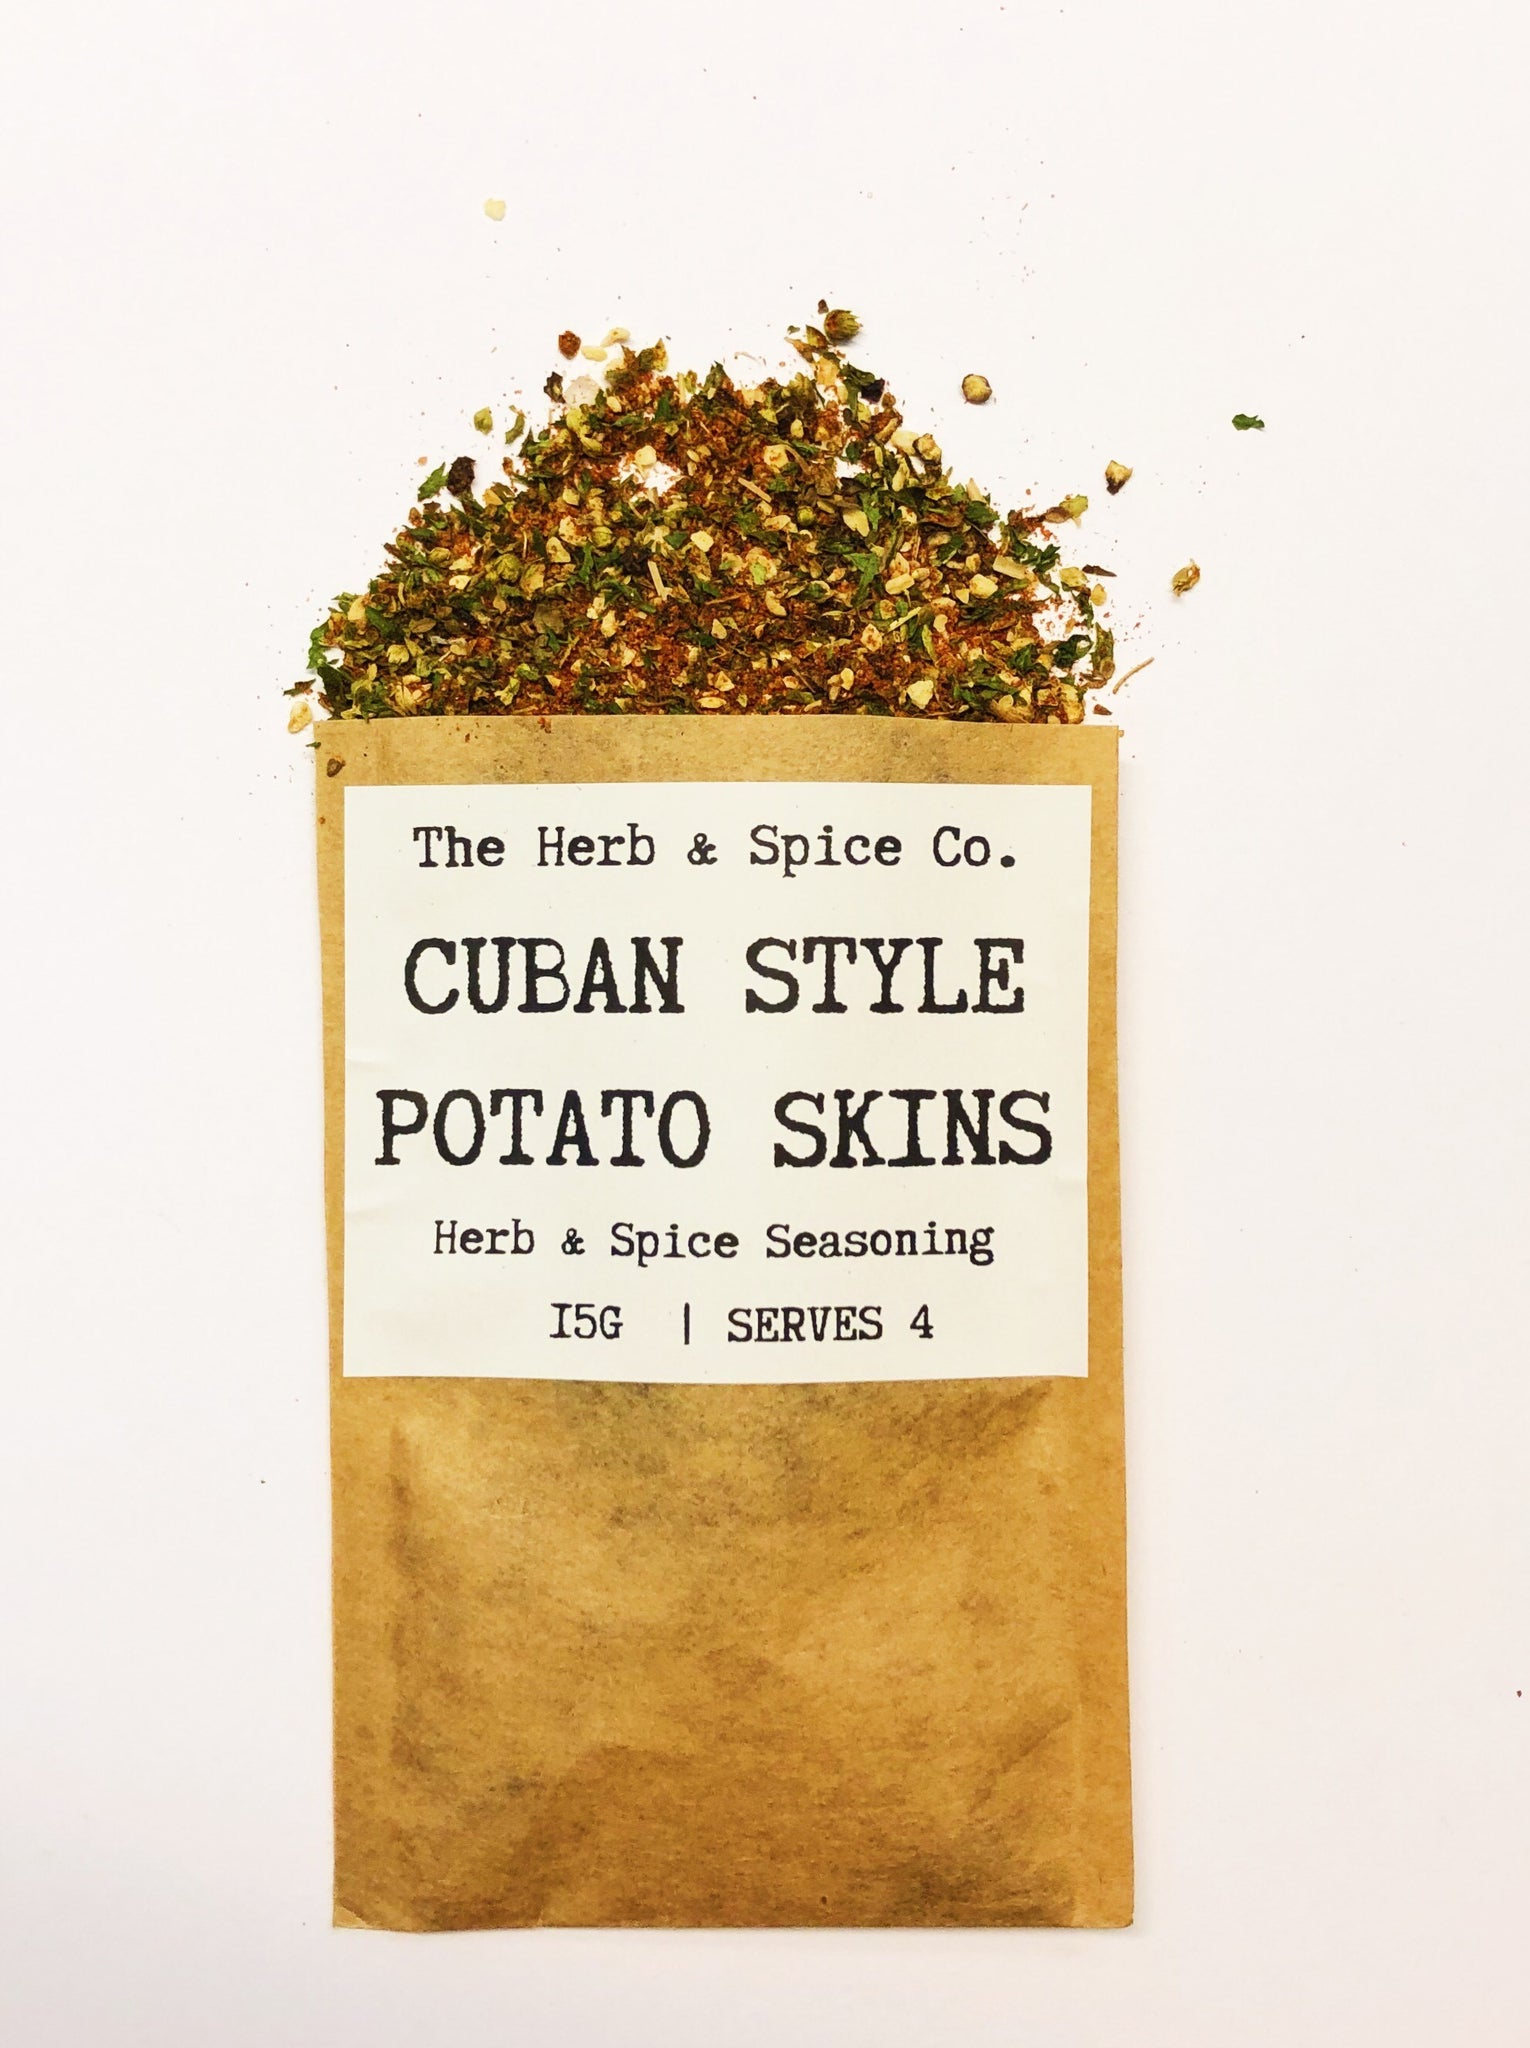 Cuban Style Potato Skins The Herb & Spice Co. Recipe